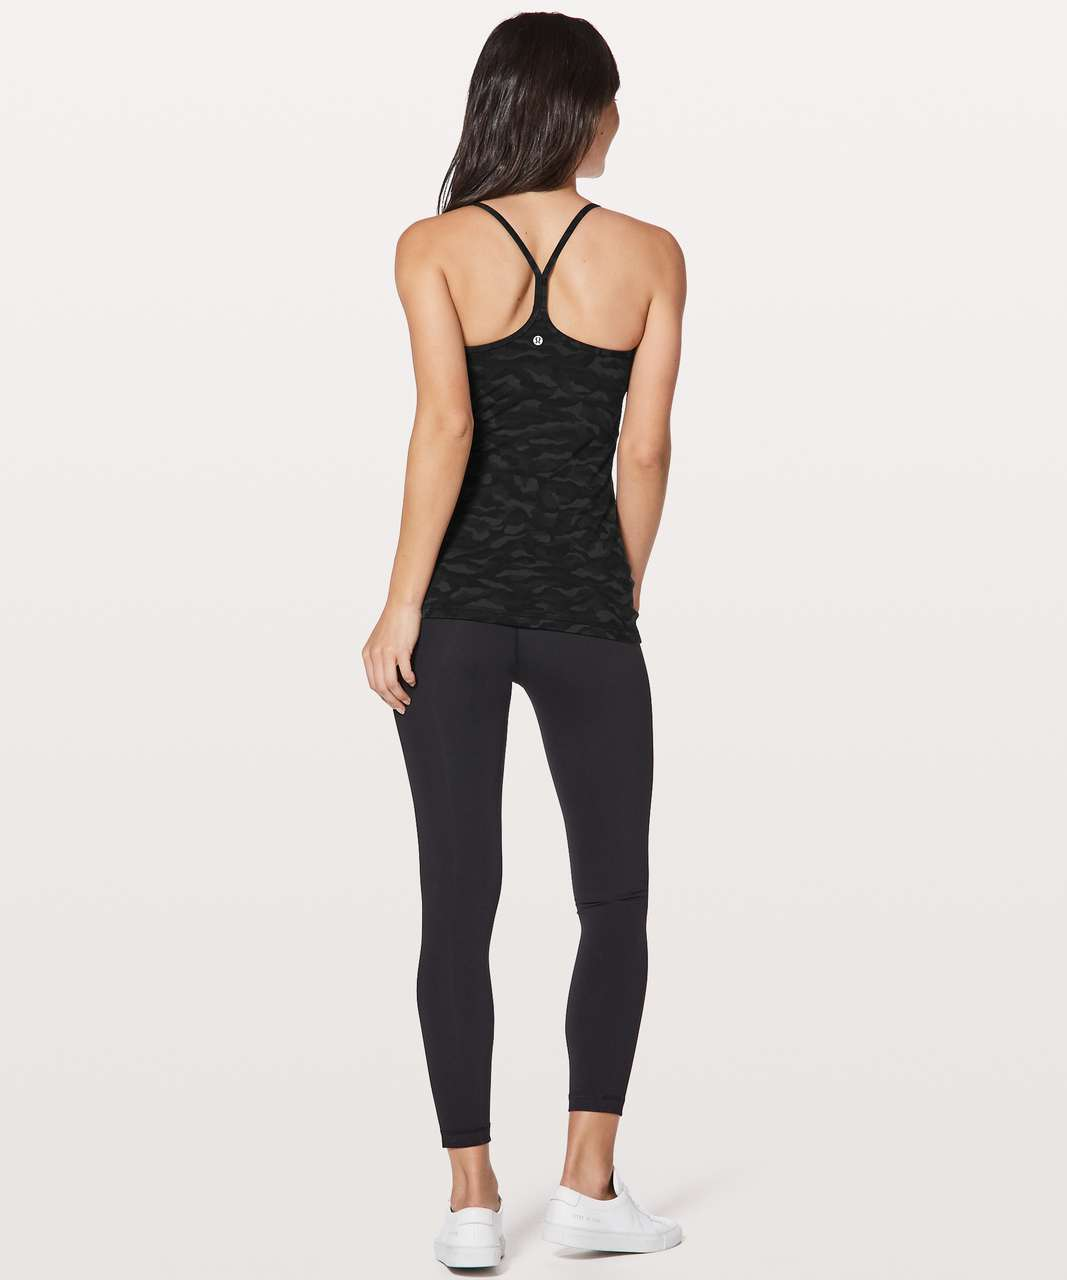 Lululemon Power Y Tank - Sequoia Camo Print Deep Coal Black / Black